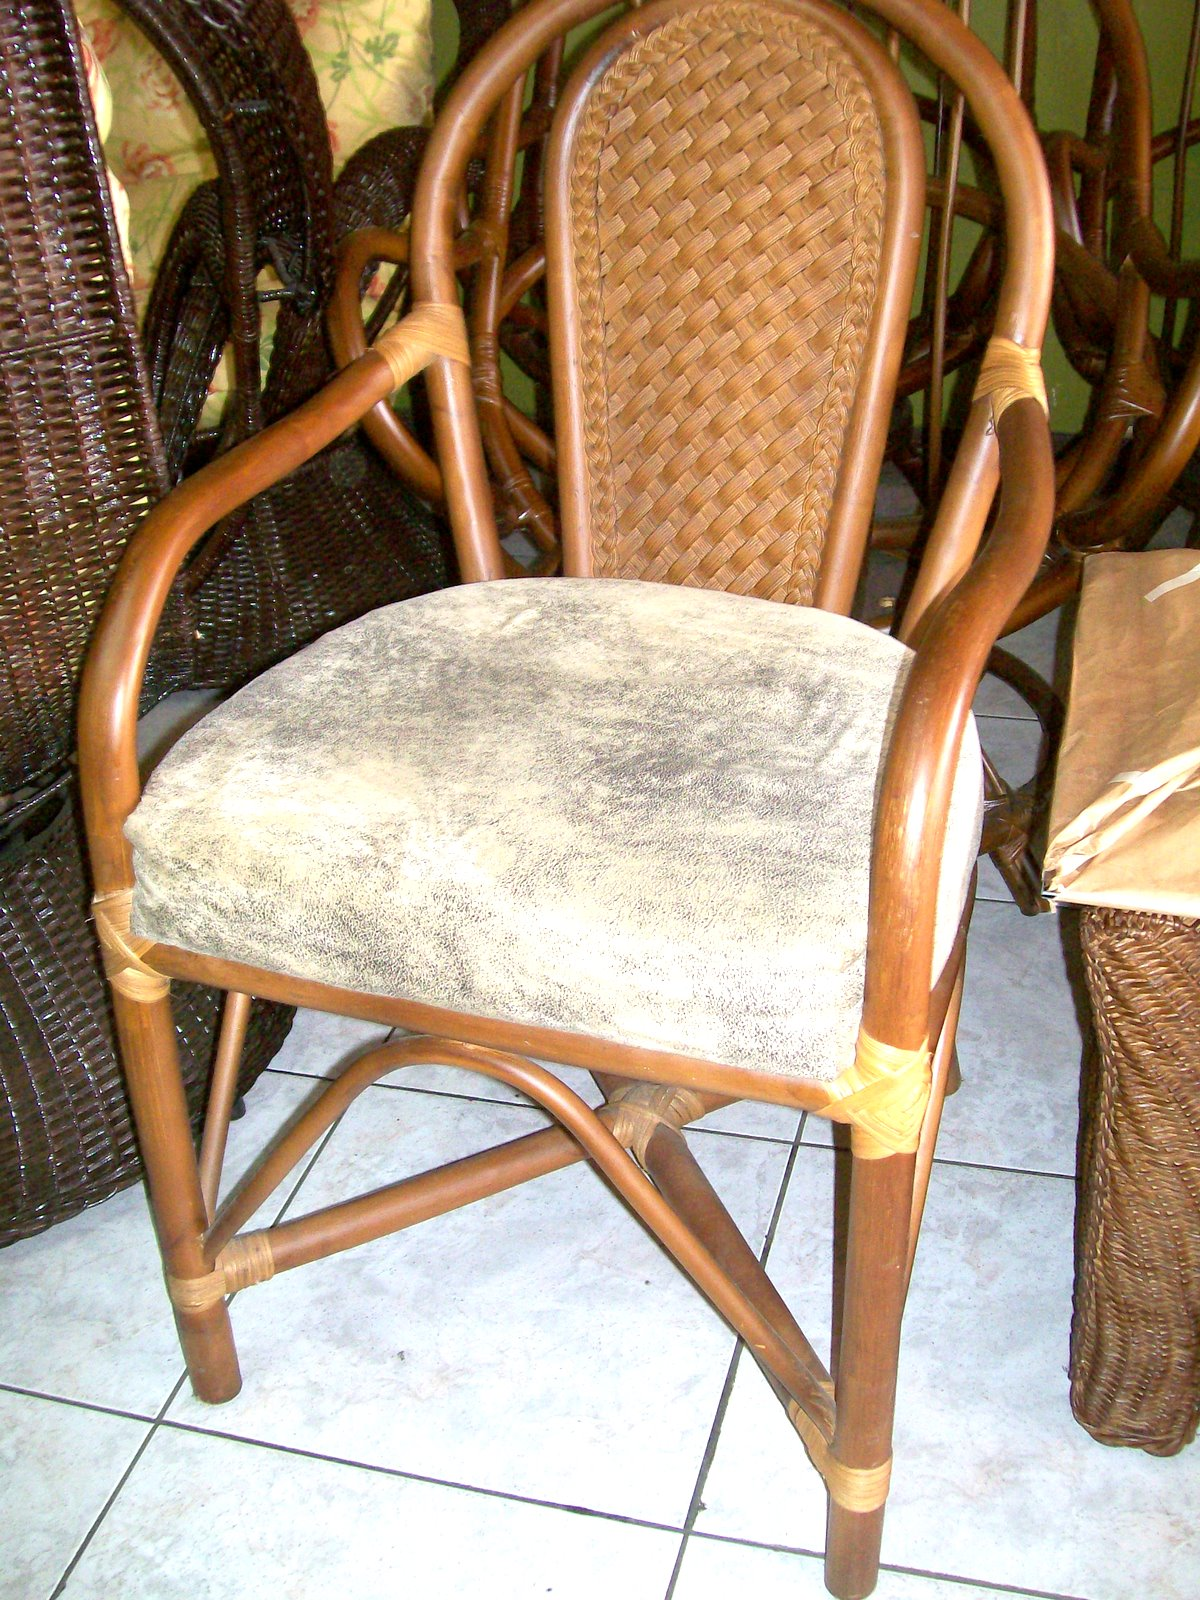 bamboo rattan chair folding size wicker and fine furniture of sarchí